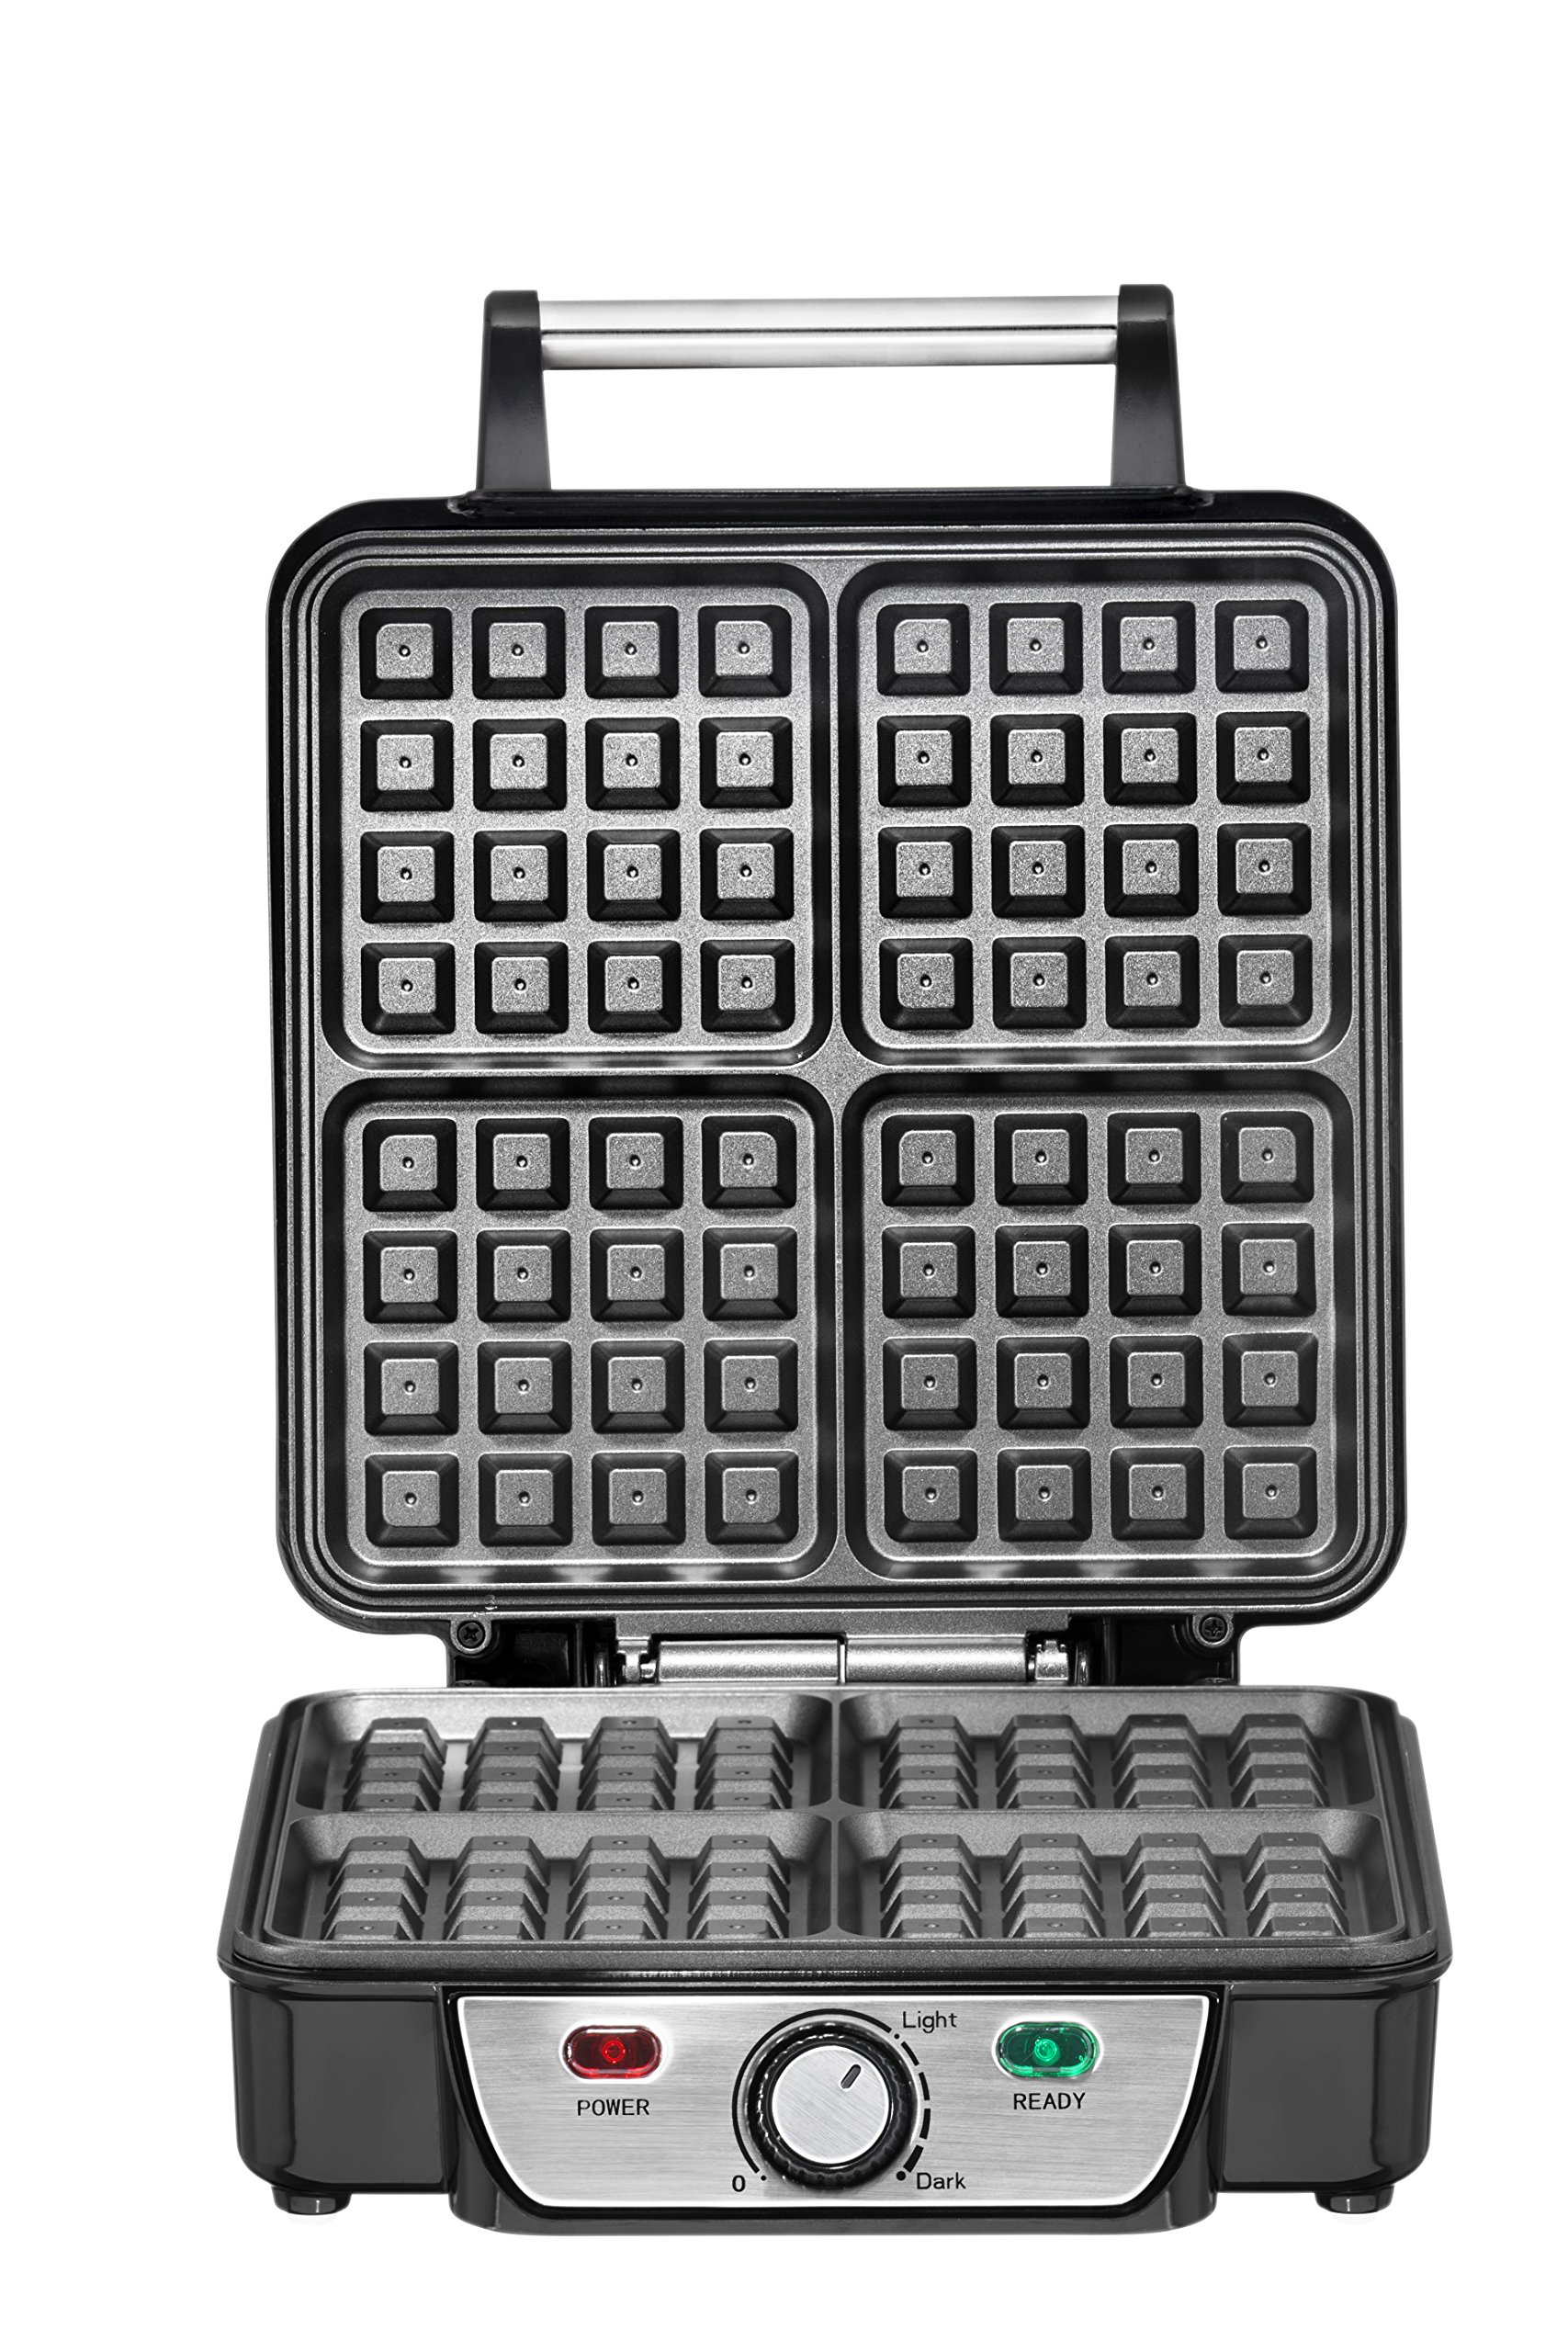 Chefman Belgian Waffle Maker, 4-Slice, Stainless Steel Non-Stick Cooking Surface, Cool Touch Handle, Adjustable Browning Control, Power/Ready Lights, Waffle Cookbook Included - RJ04-4P by Chefman (Image #5)